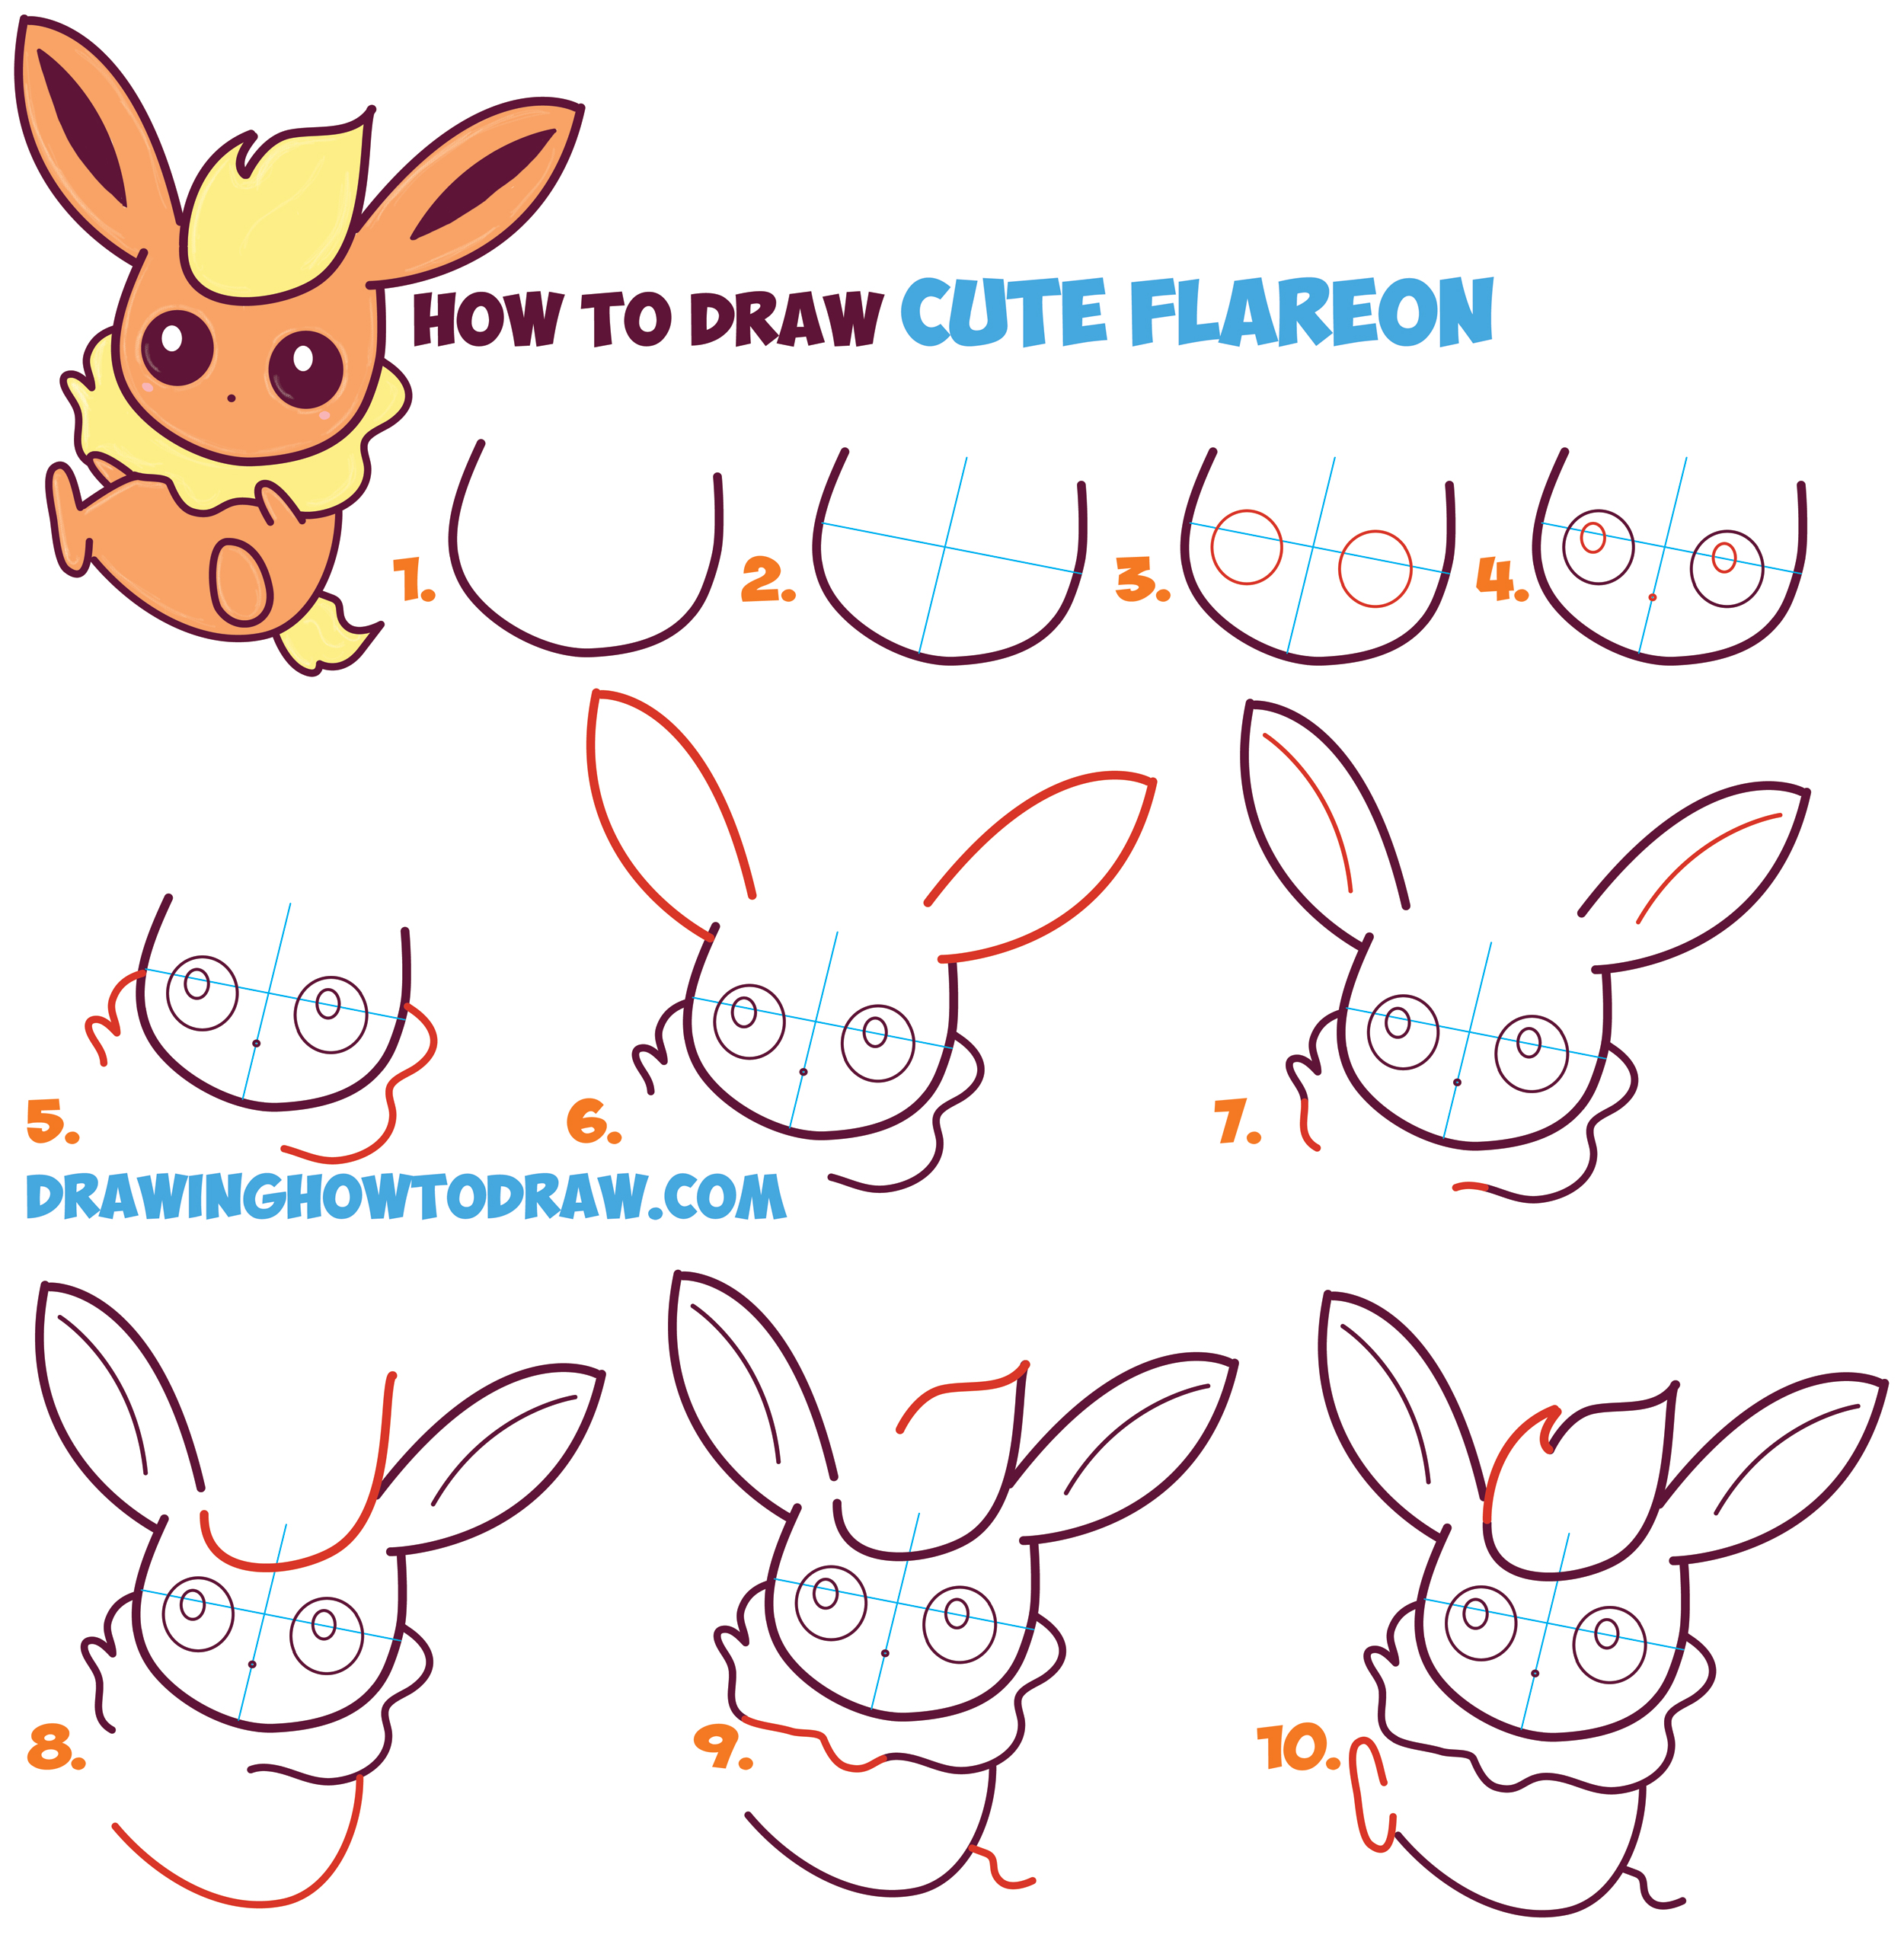 Kawaii pokemon easy images pokemon images for Drawing ideas for beginners step by step